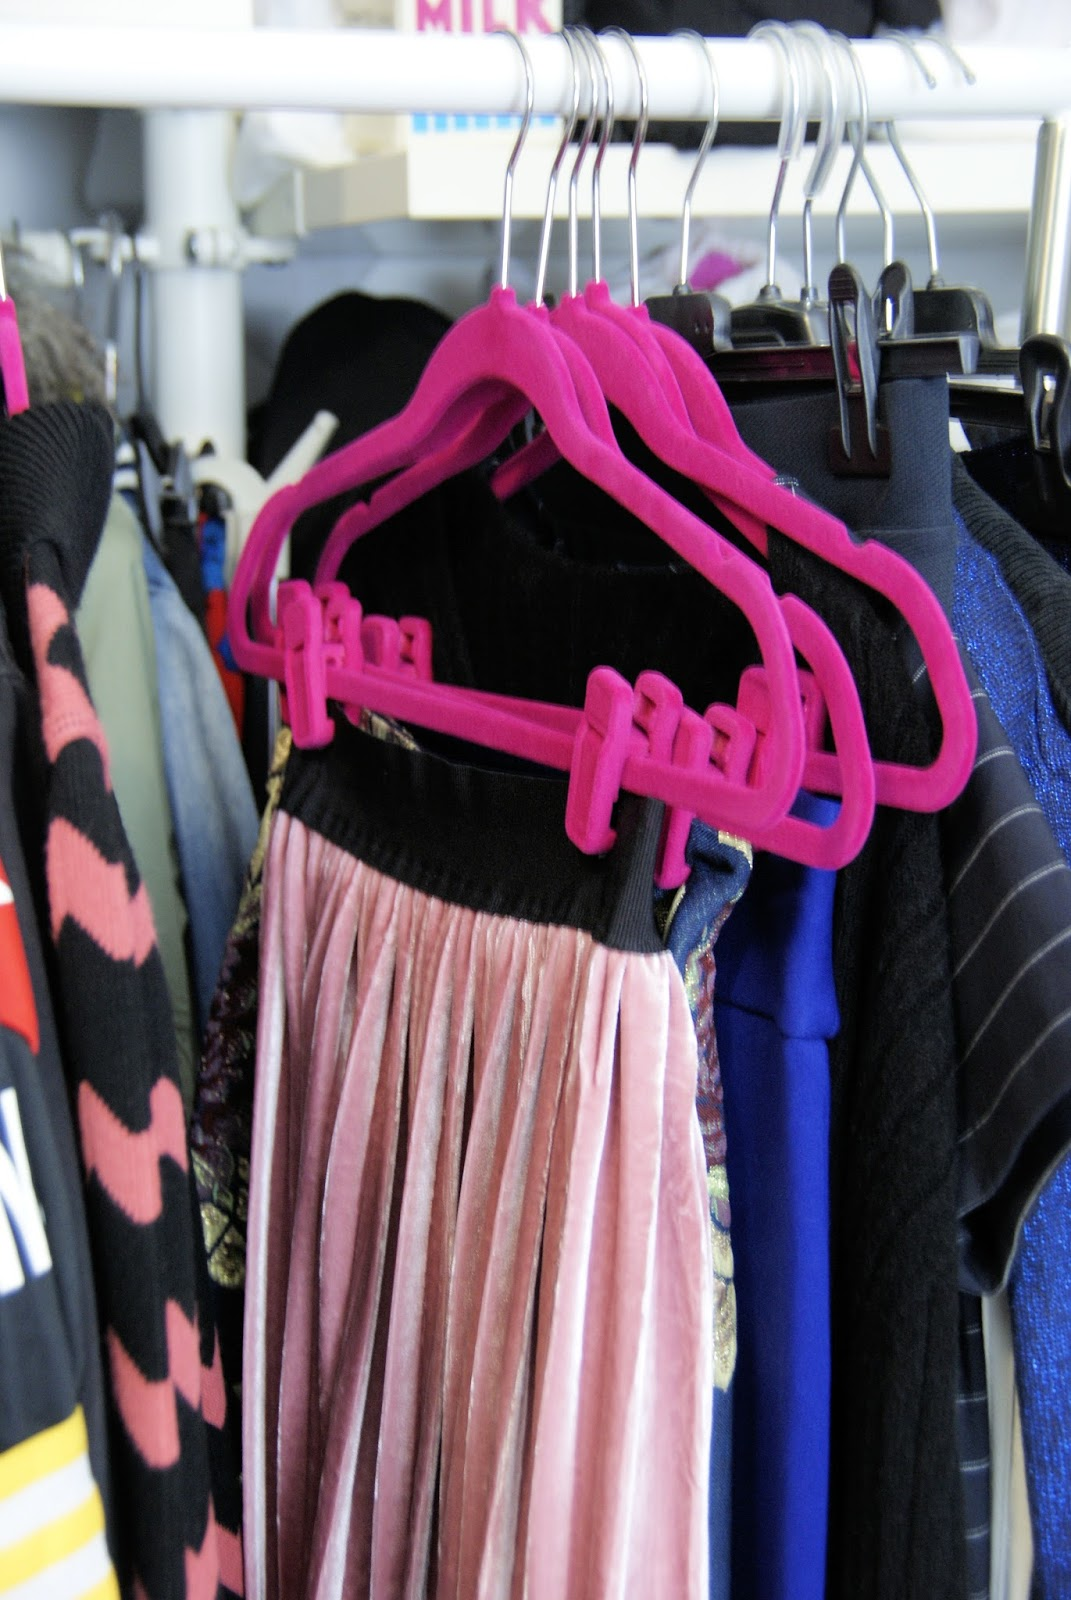 Clever Hangers per gonne by HSE24: la soluzione ai miei problemi di armadio su Fashion and Cookies fashion blog